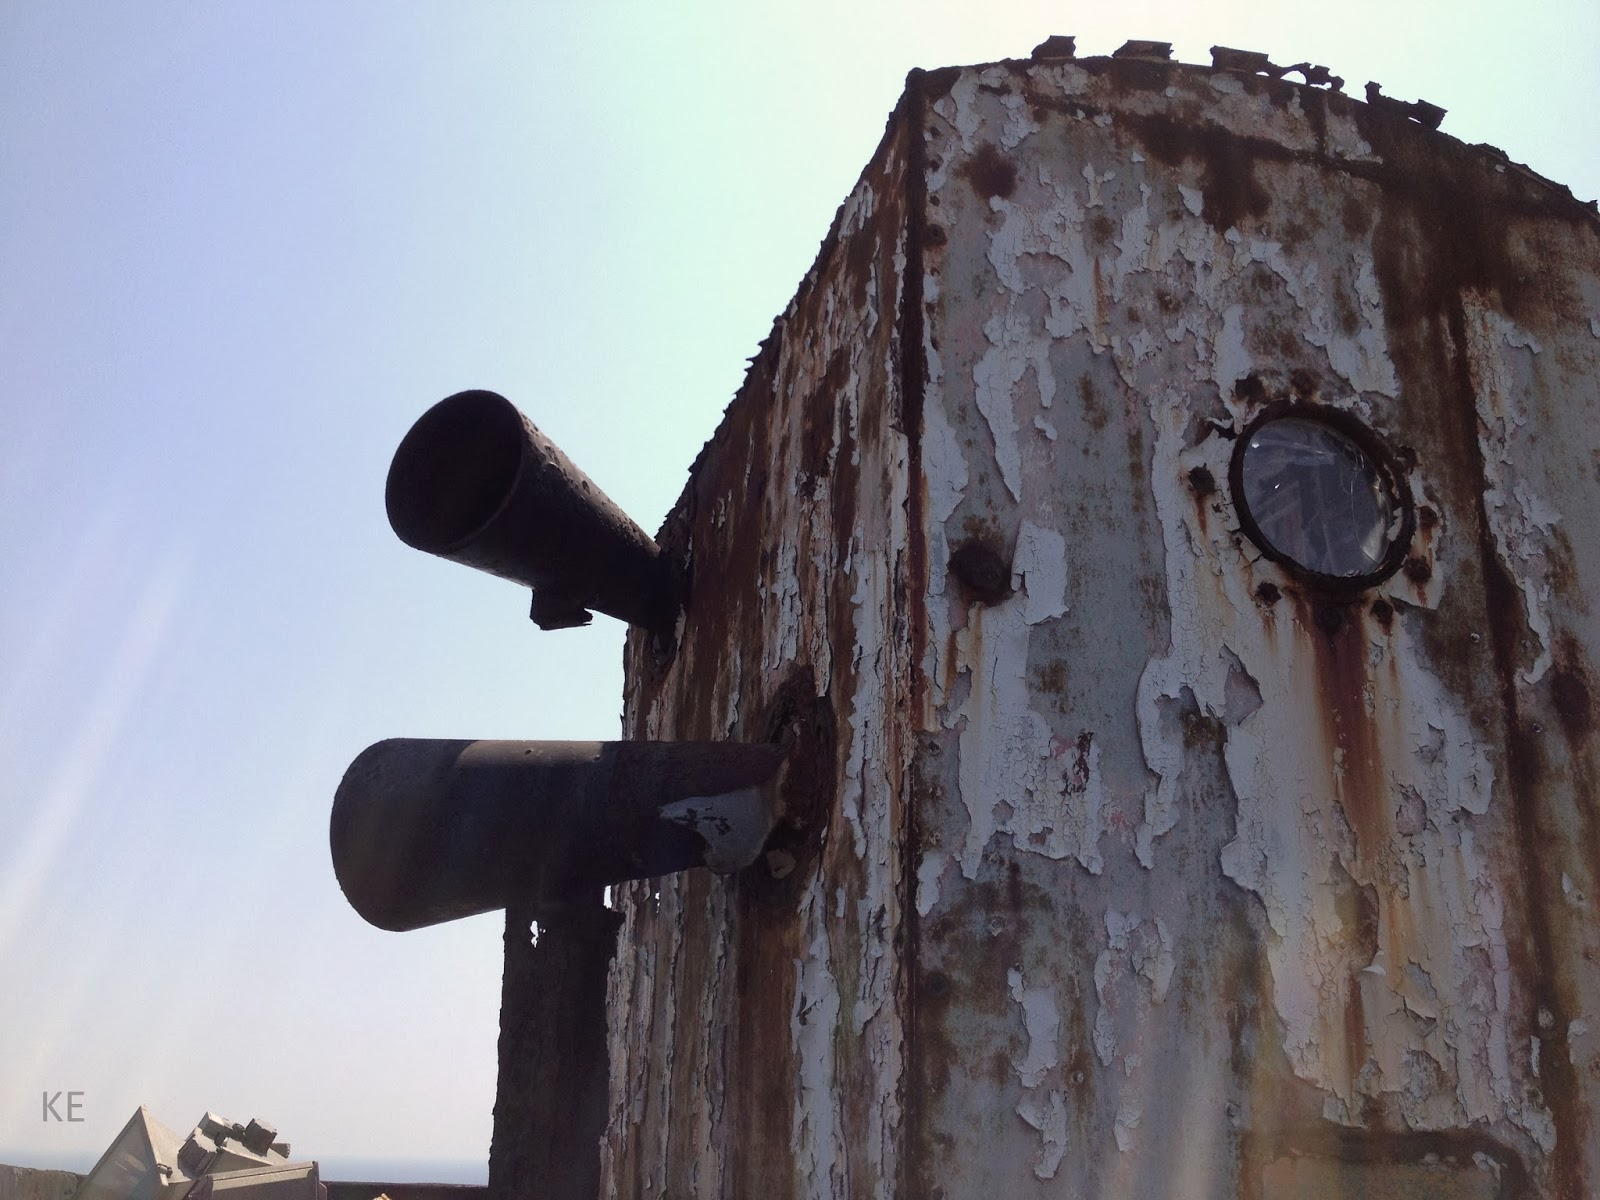 waglan shutter island hongkong fl acirc neur ghost stories are commonplace for deserted places like waglan island one is recorded in the essay hong kong s lighthouses and the men who manned them by